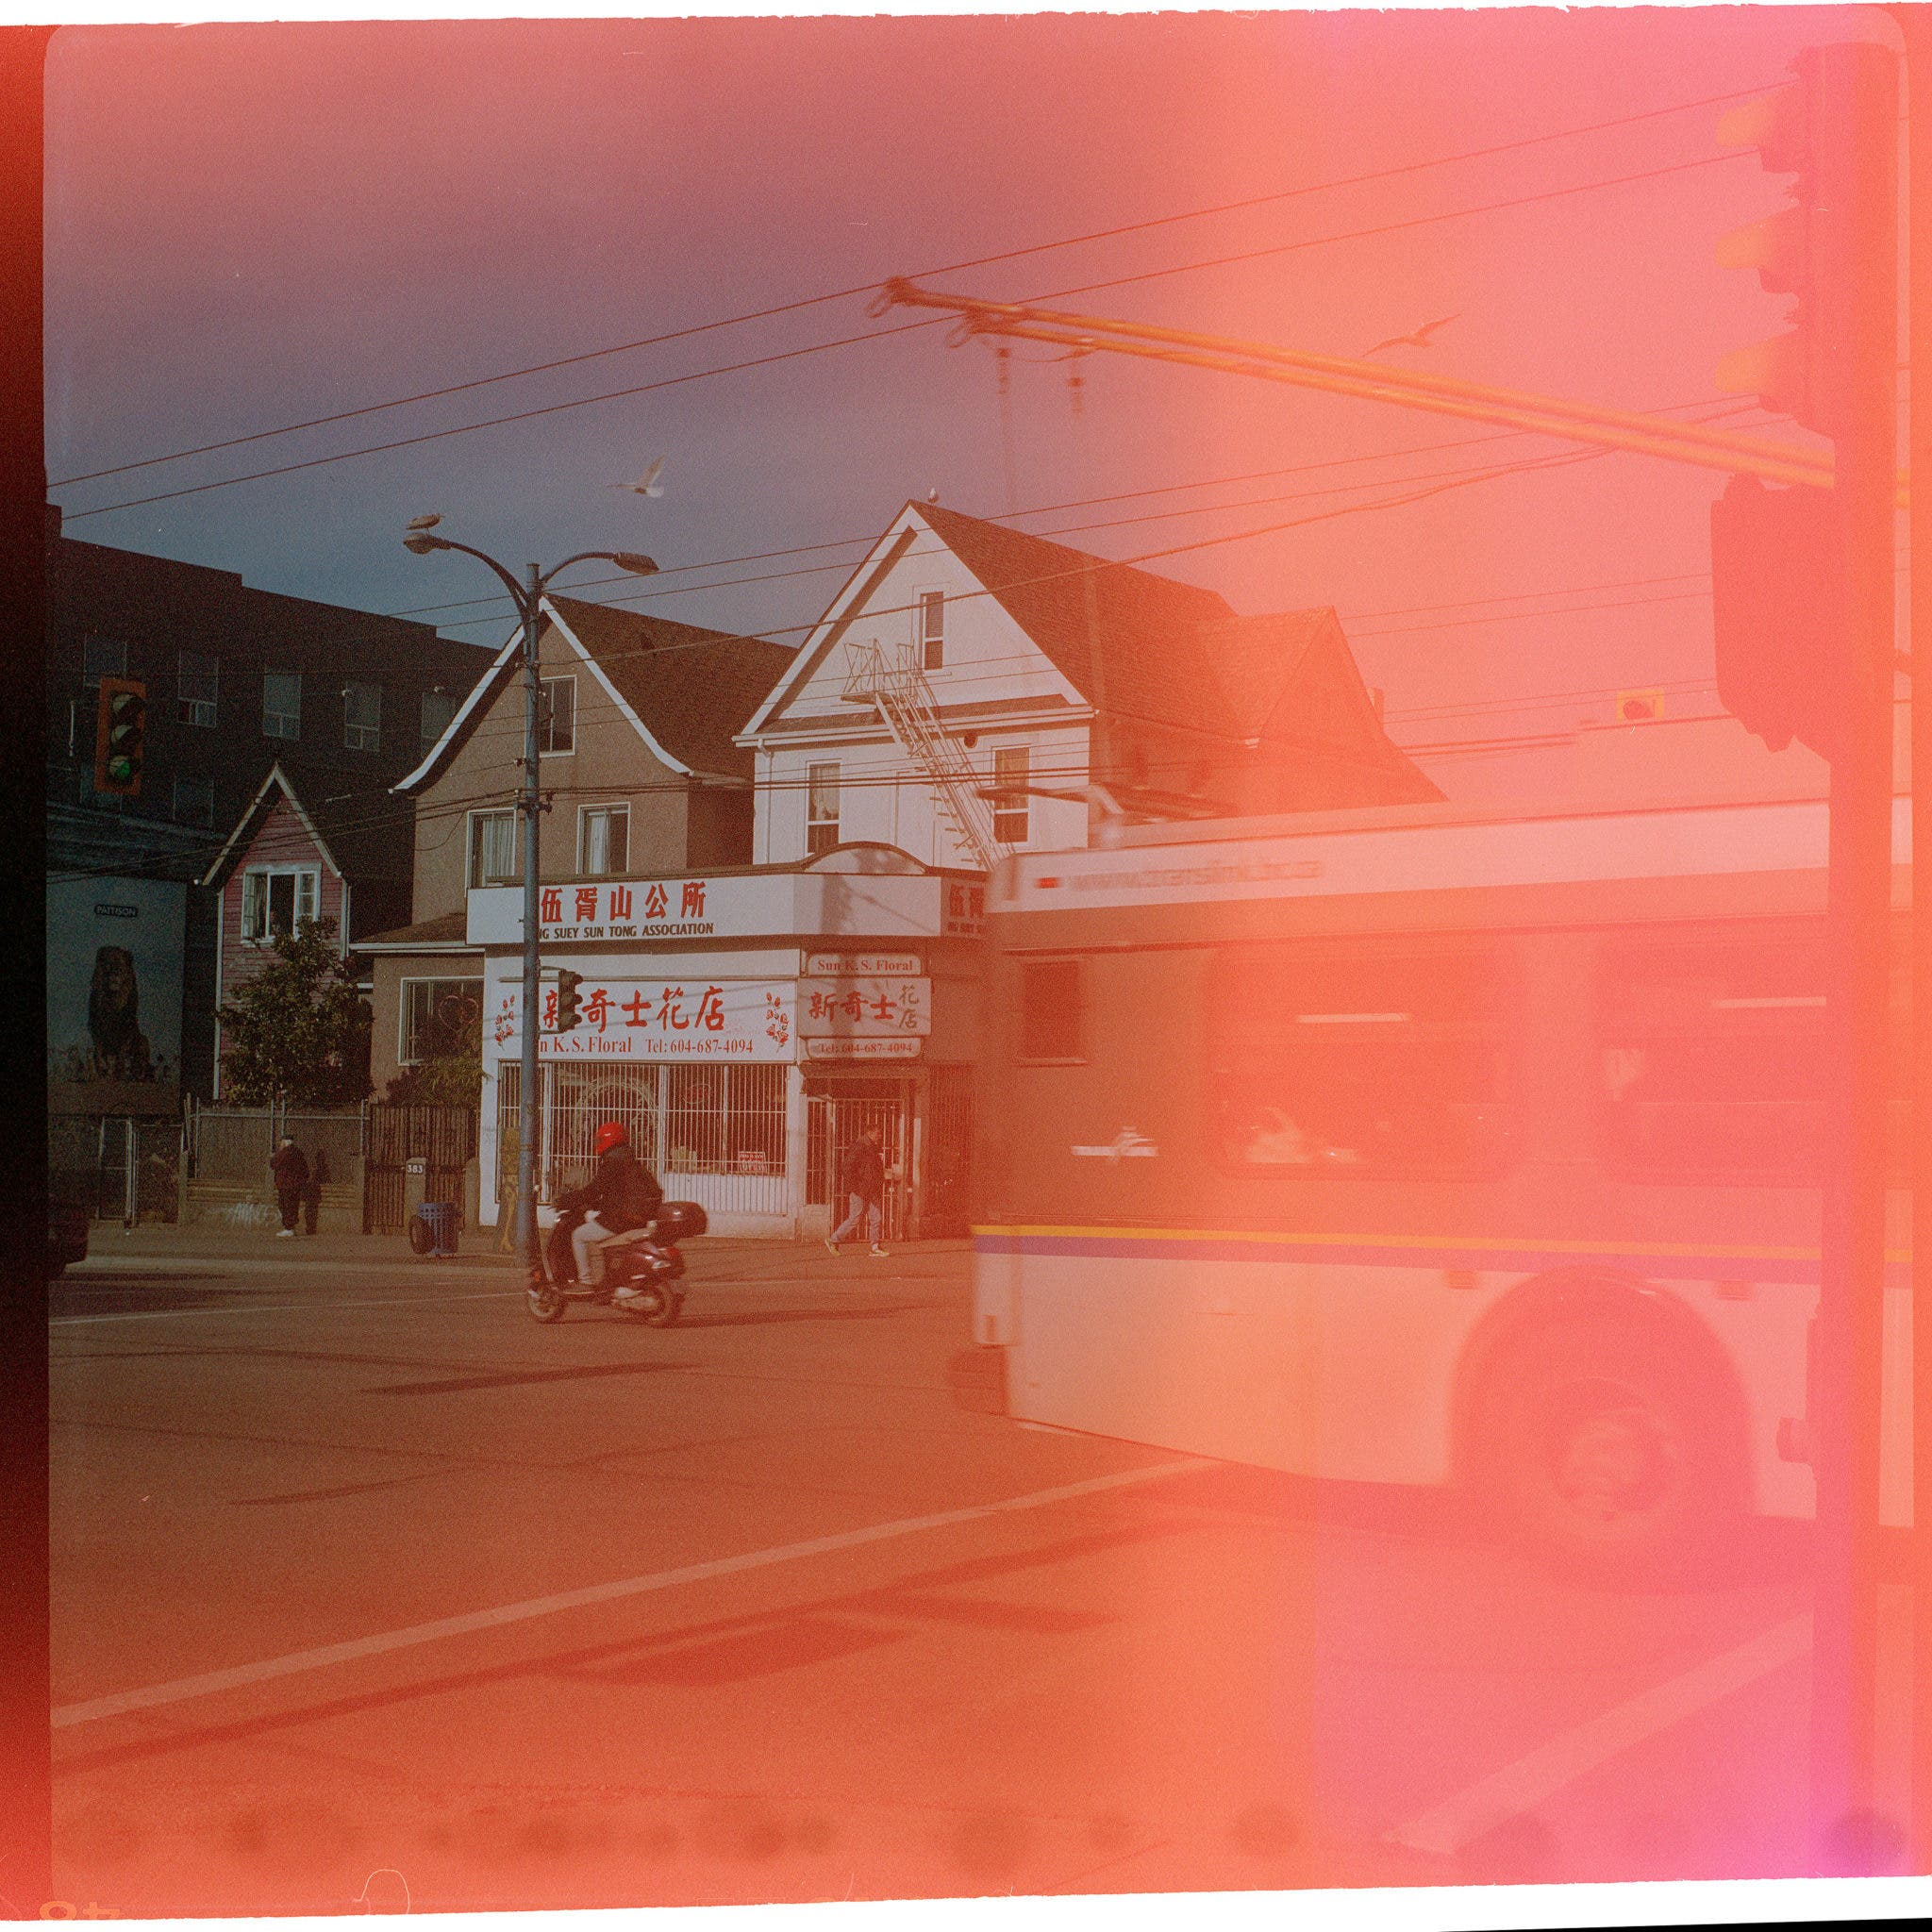 What Happens When You Shoot With Expired Film?